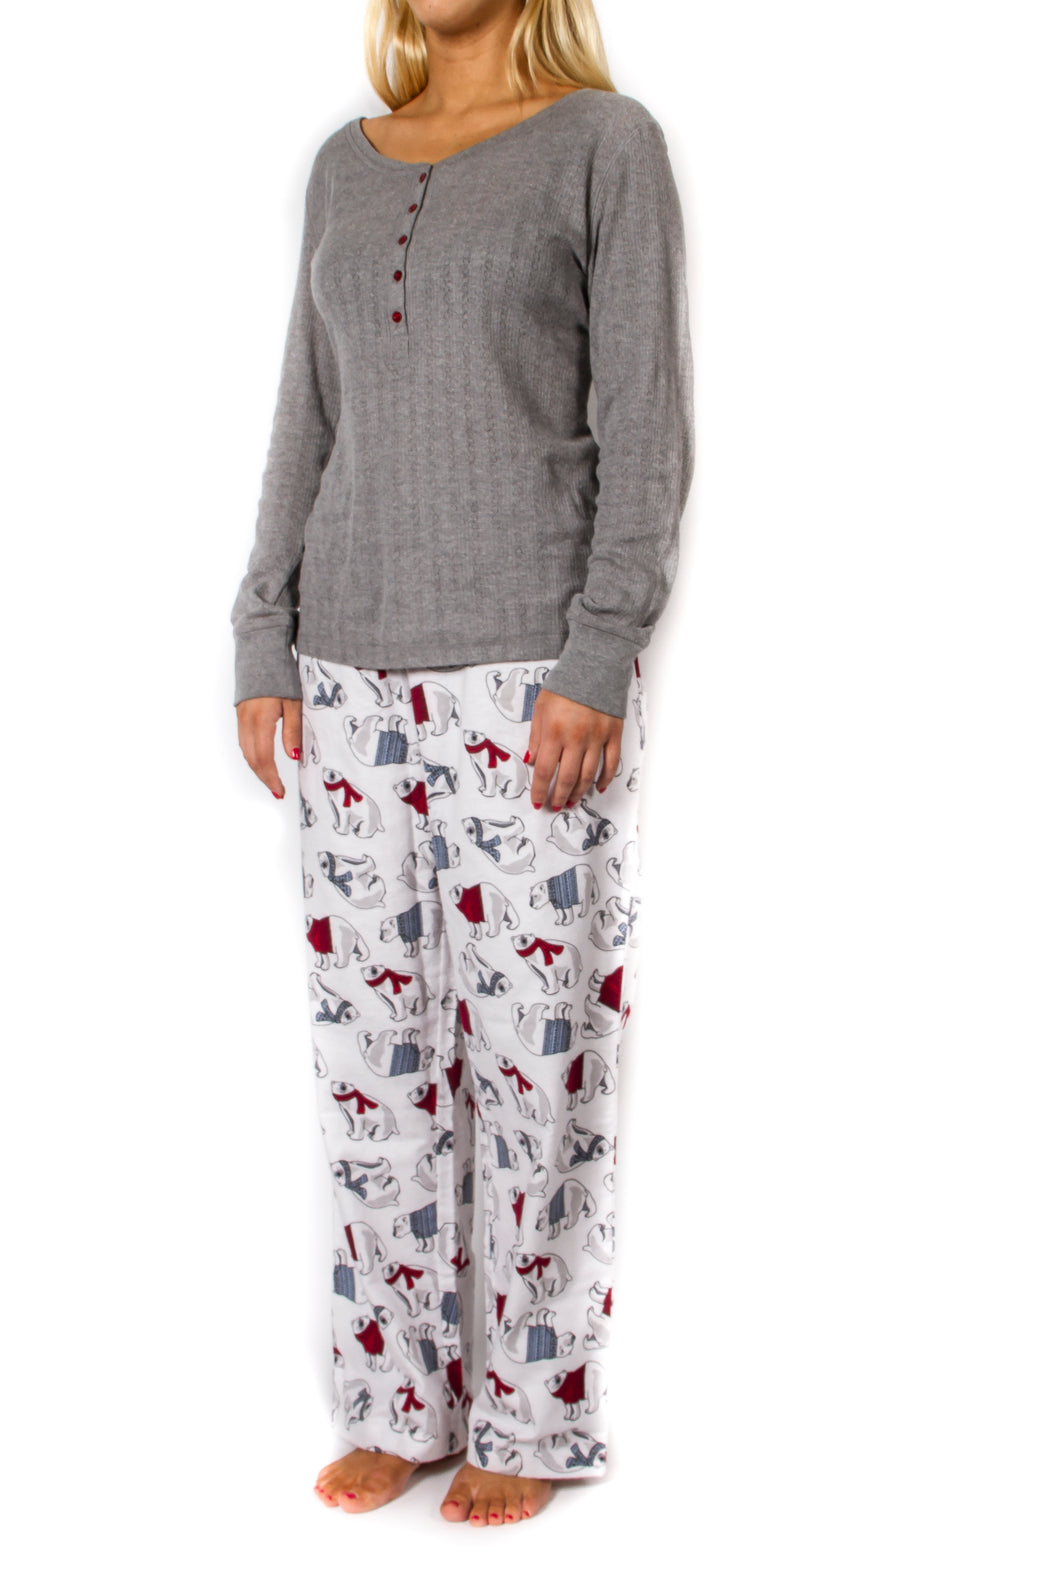 Women's 2pc Long Sleeve Pajama Set - Grey